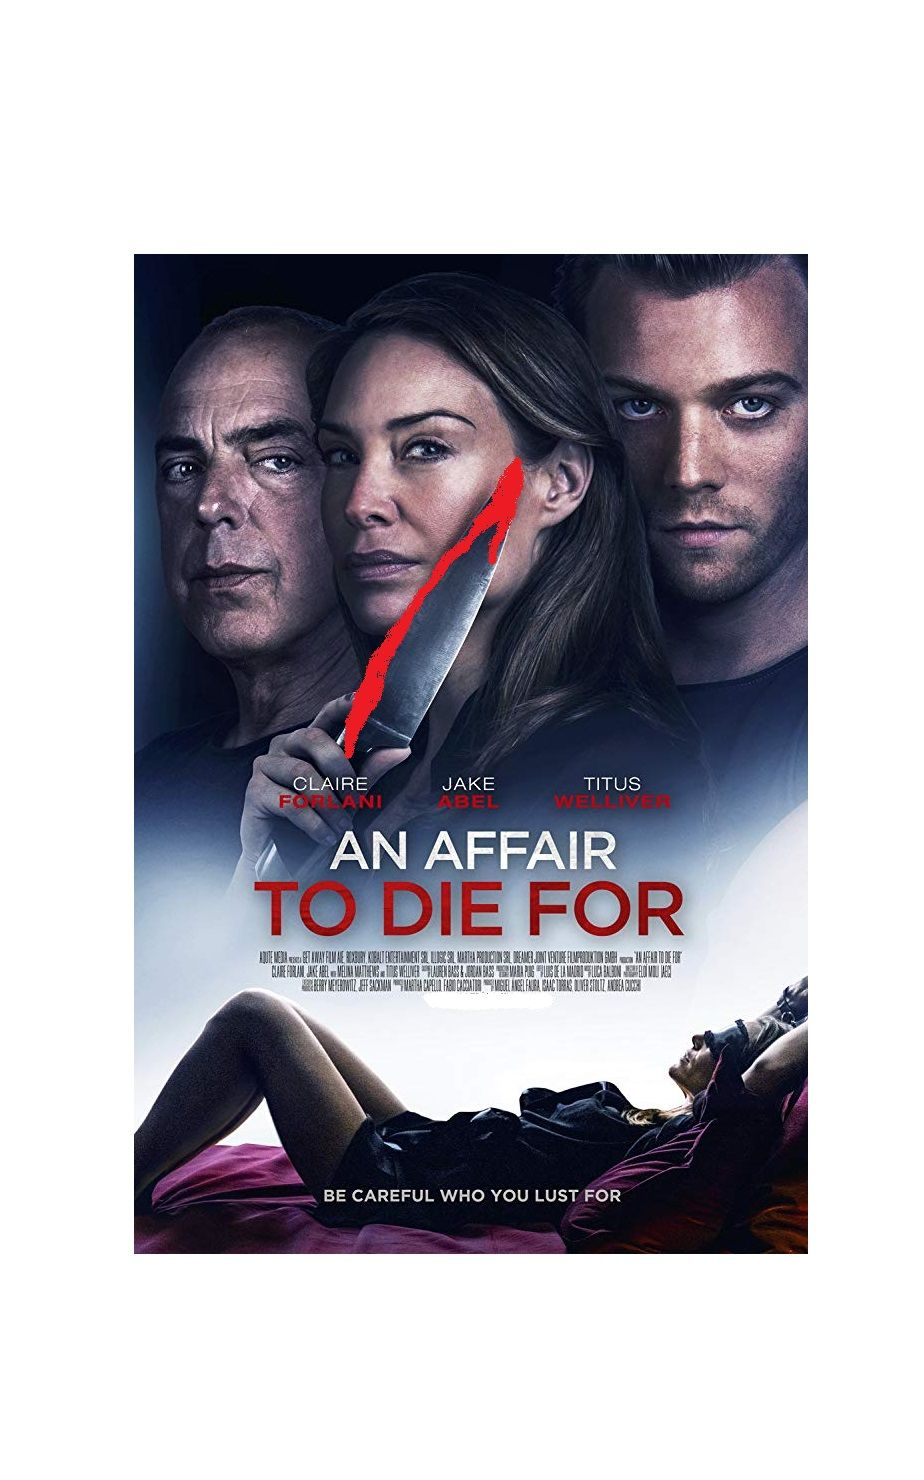 An Affair To Die For Thriller Movies Movie Posters